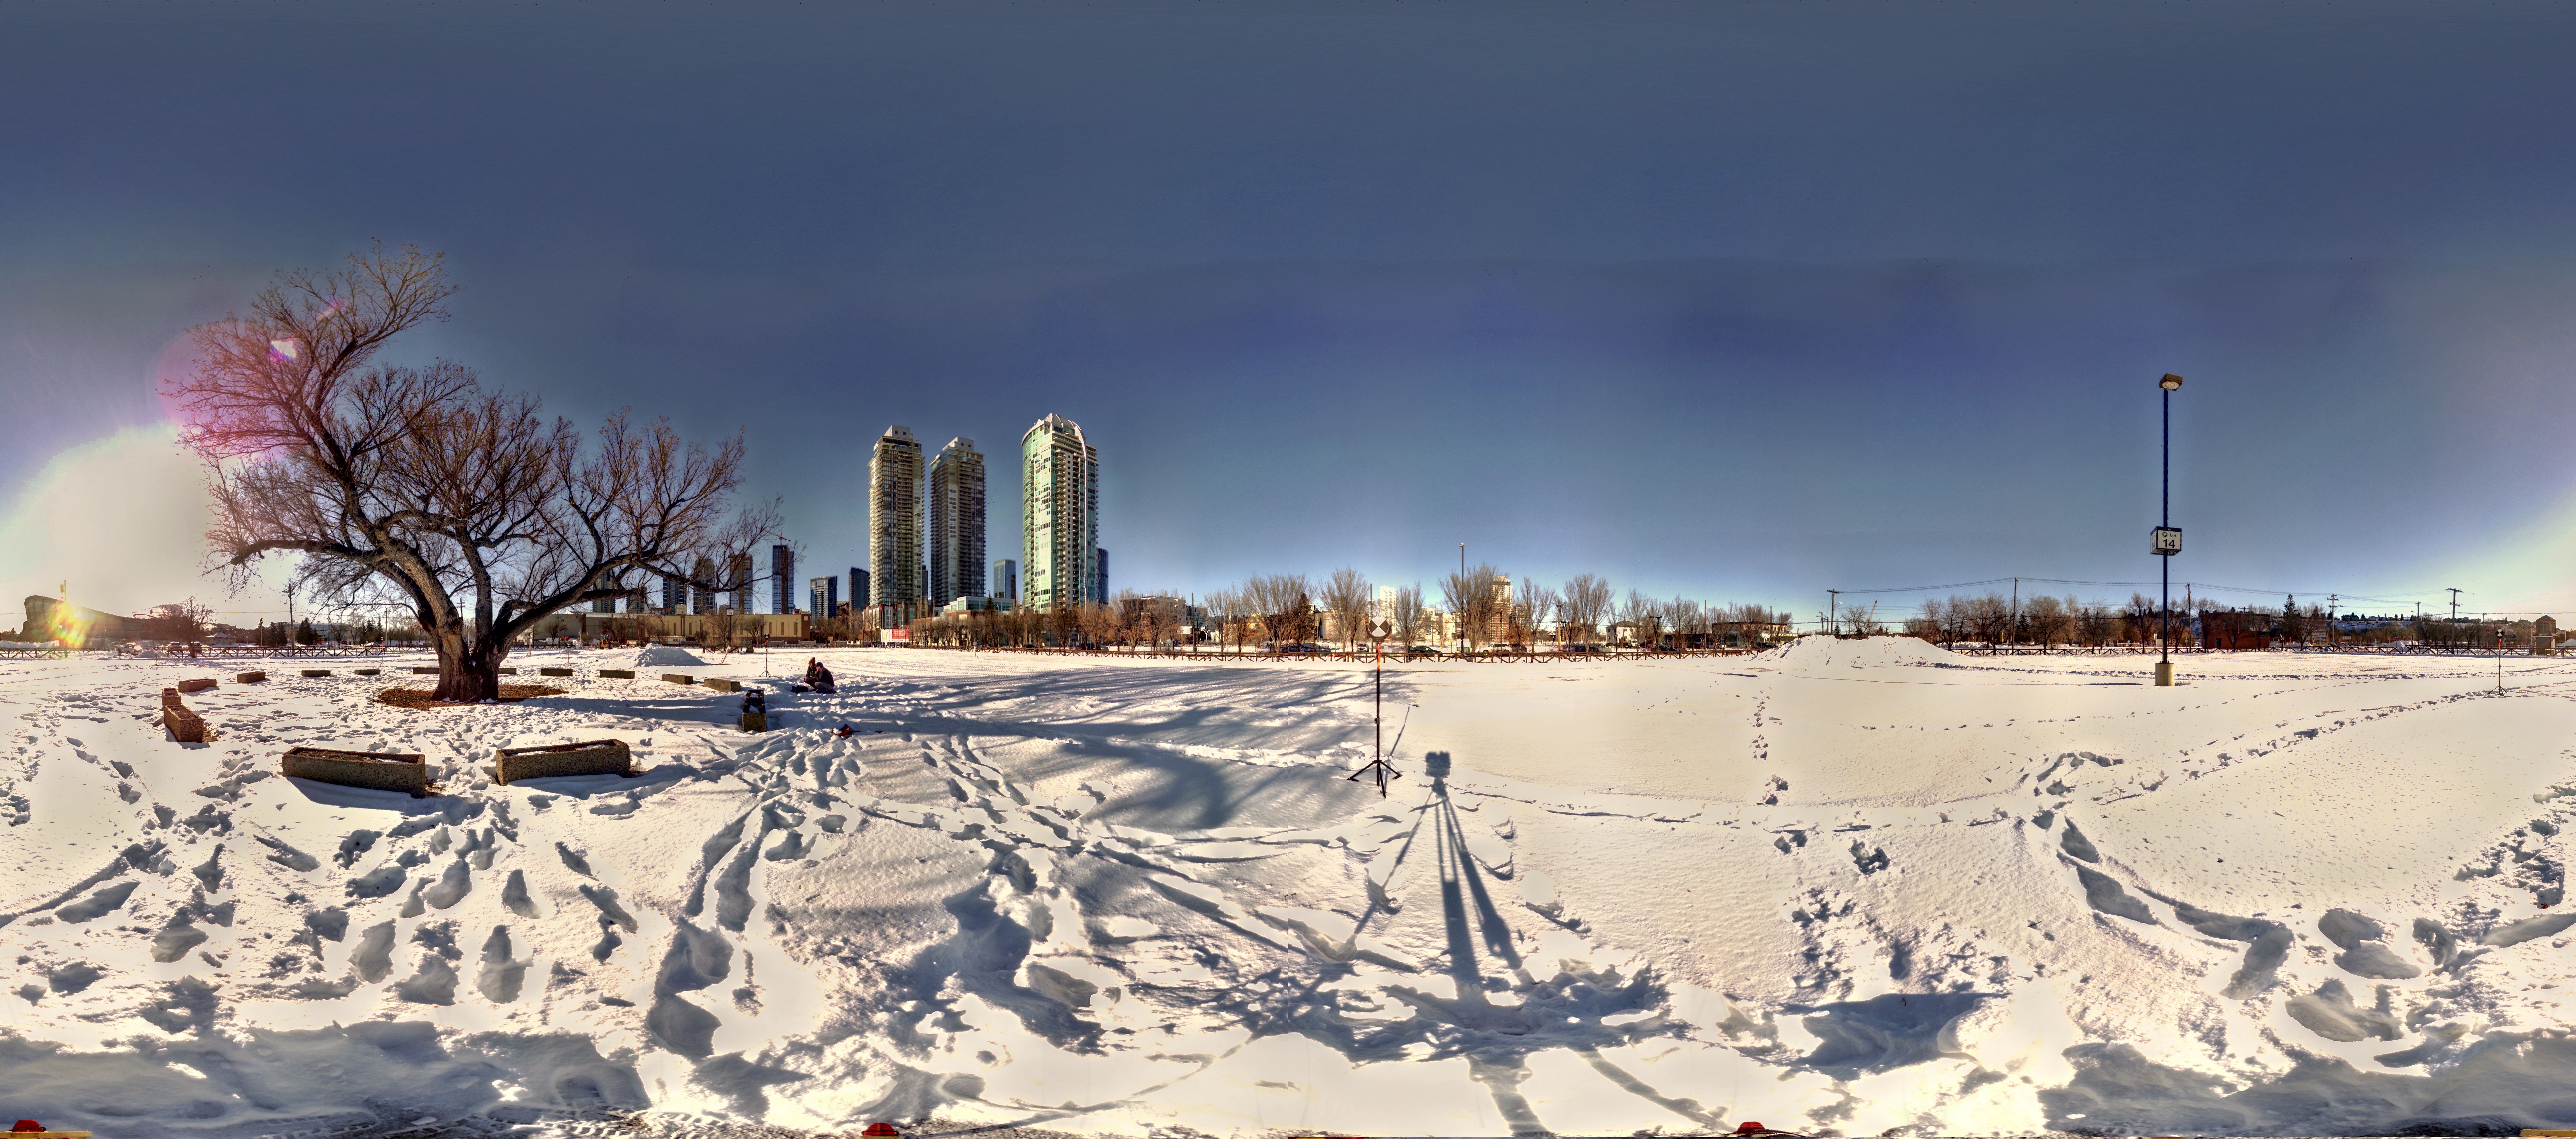 Panoramic view of the Stampede Elm and downtown Calgary from Z+F 5010X laser scanner, scanning location 12